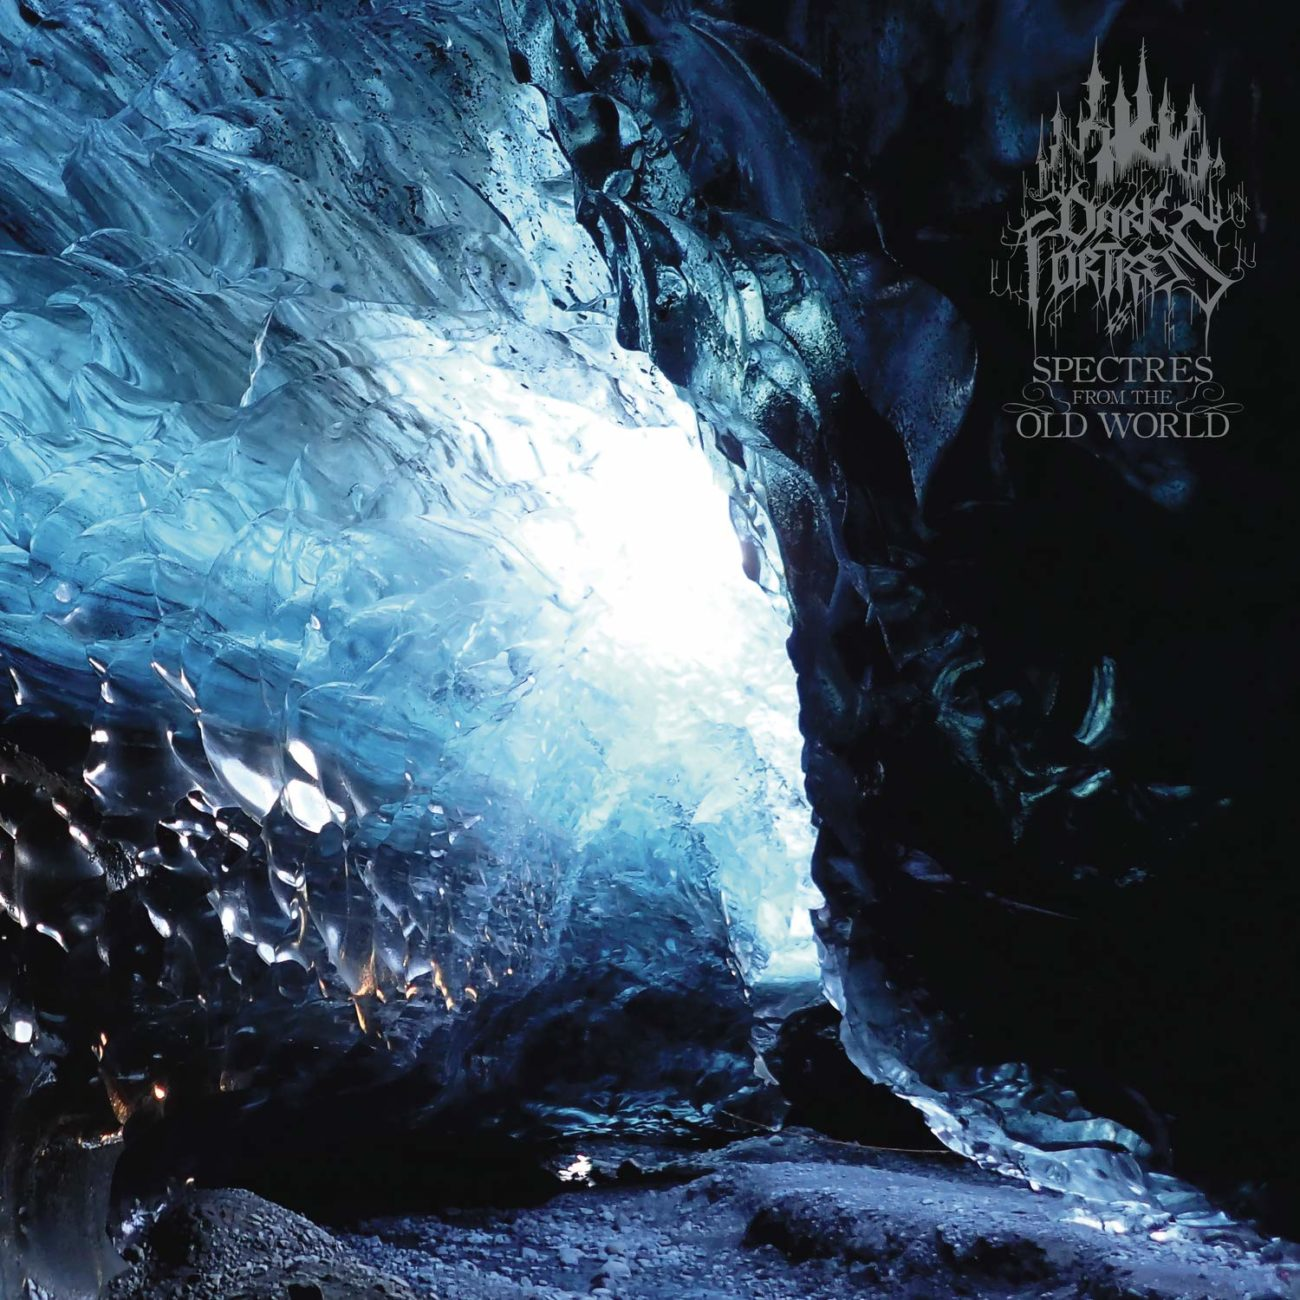 DARK FORTRESS - Spectres From The Old World